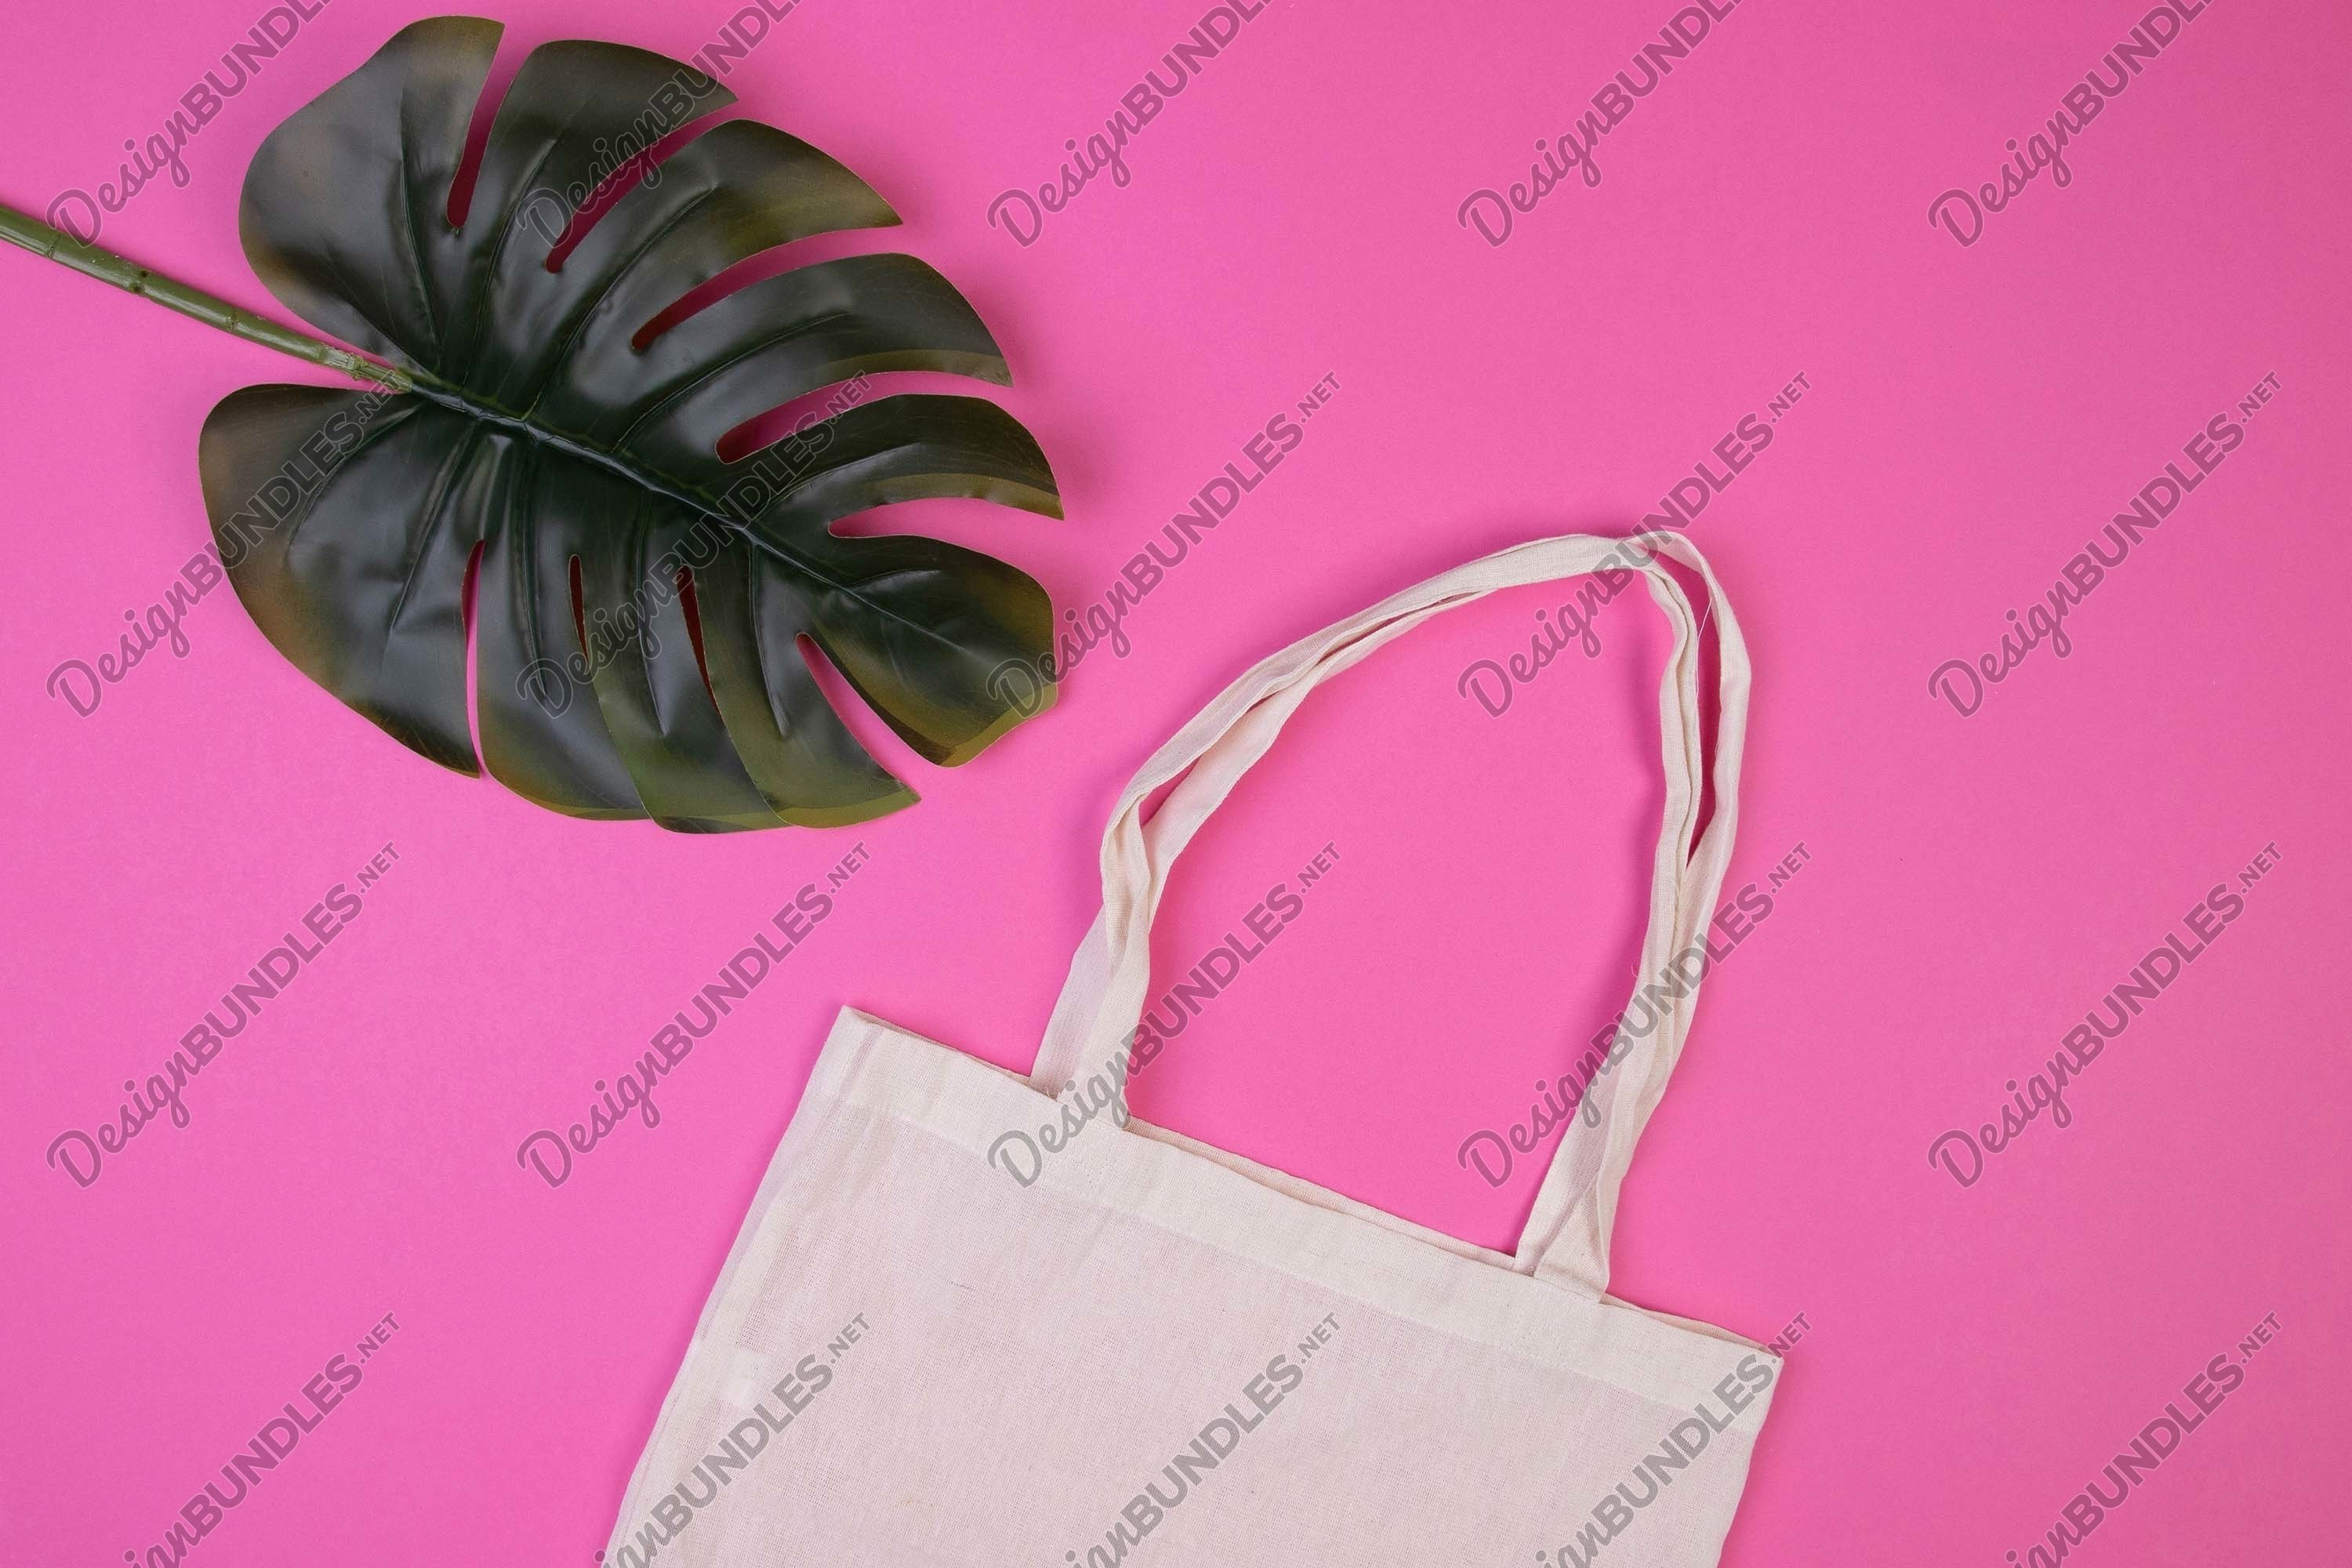 Stock Photo - Eco bag and palm leaves on color background example image 1